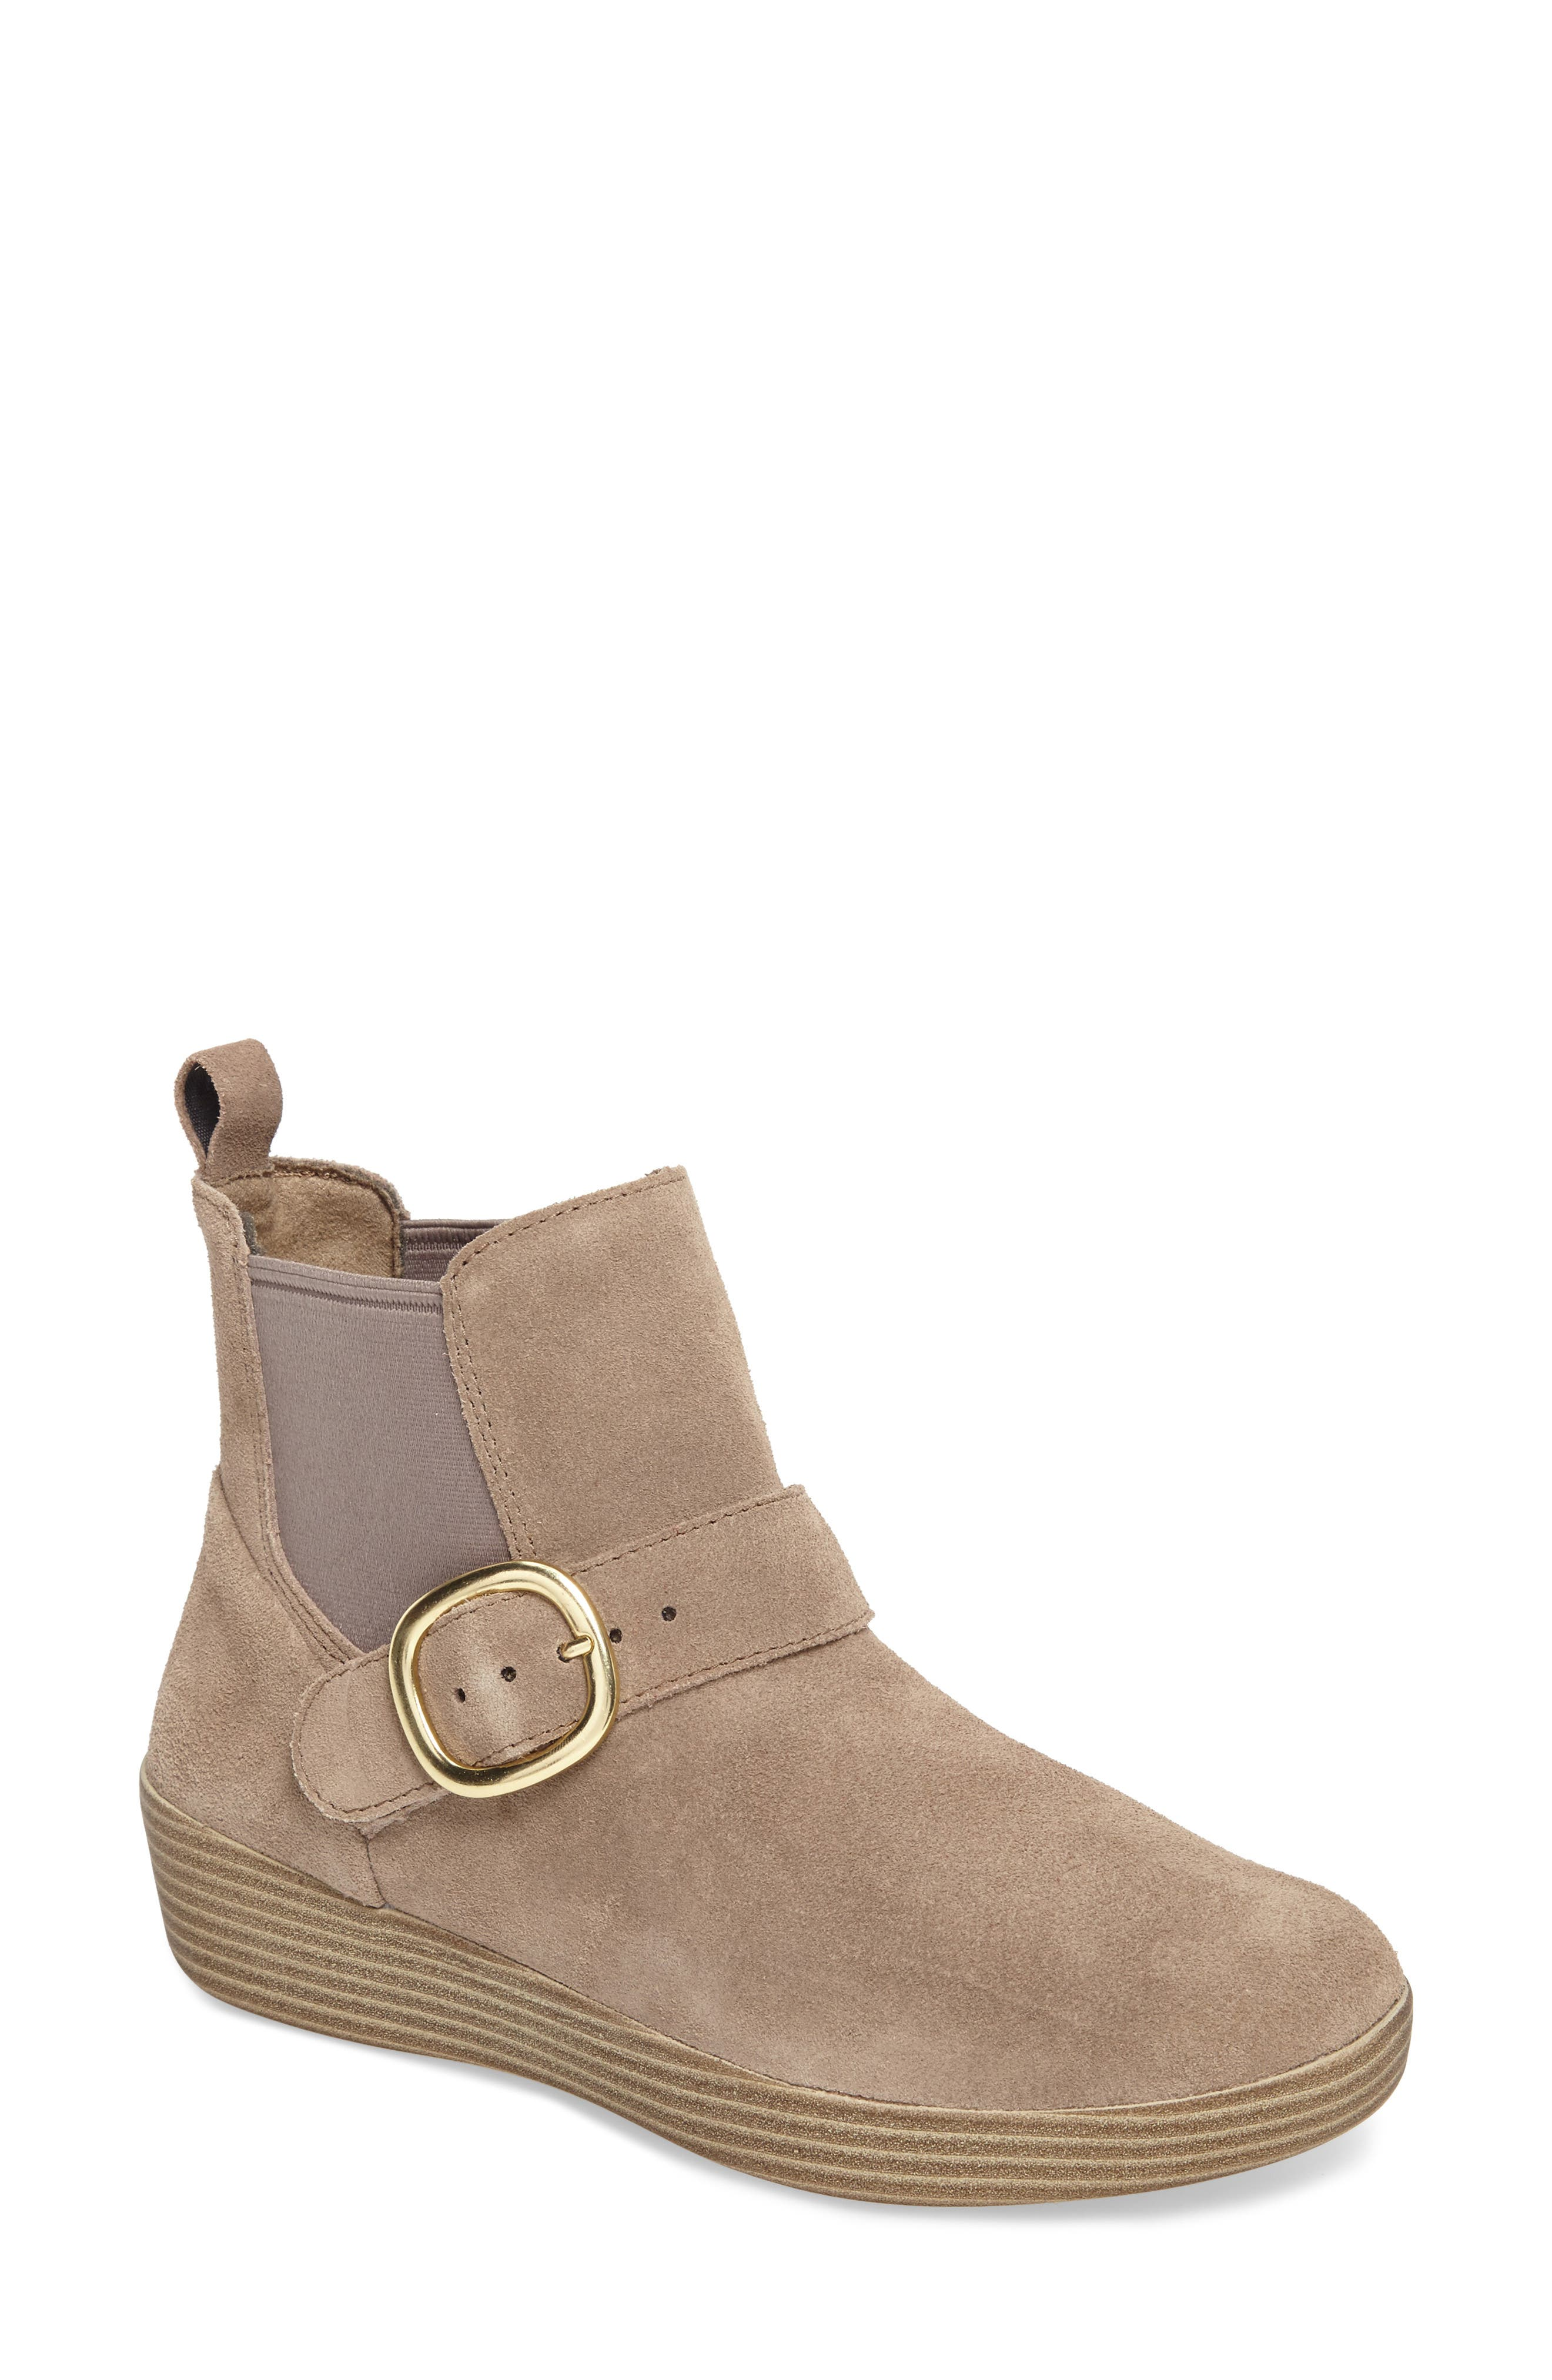 Superbuckle Chelsea Boot,                         Main,                         color,